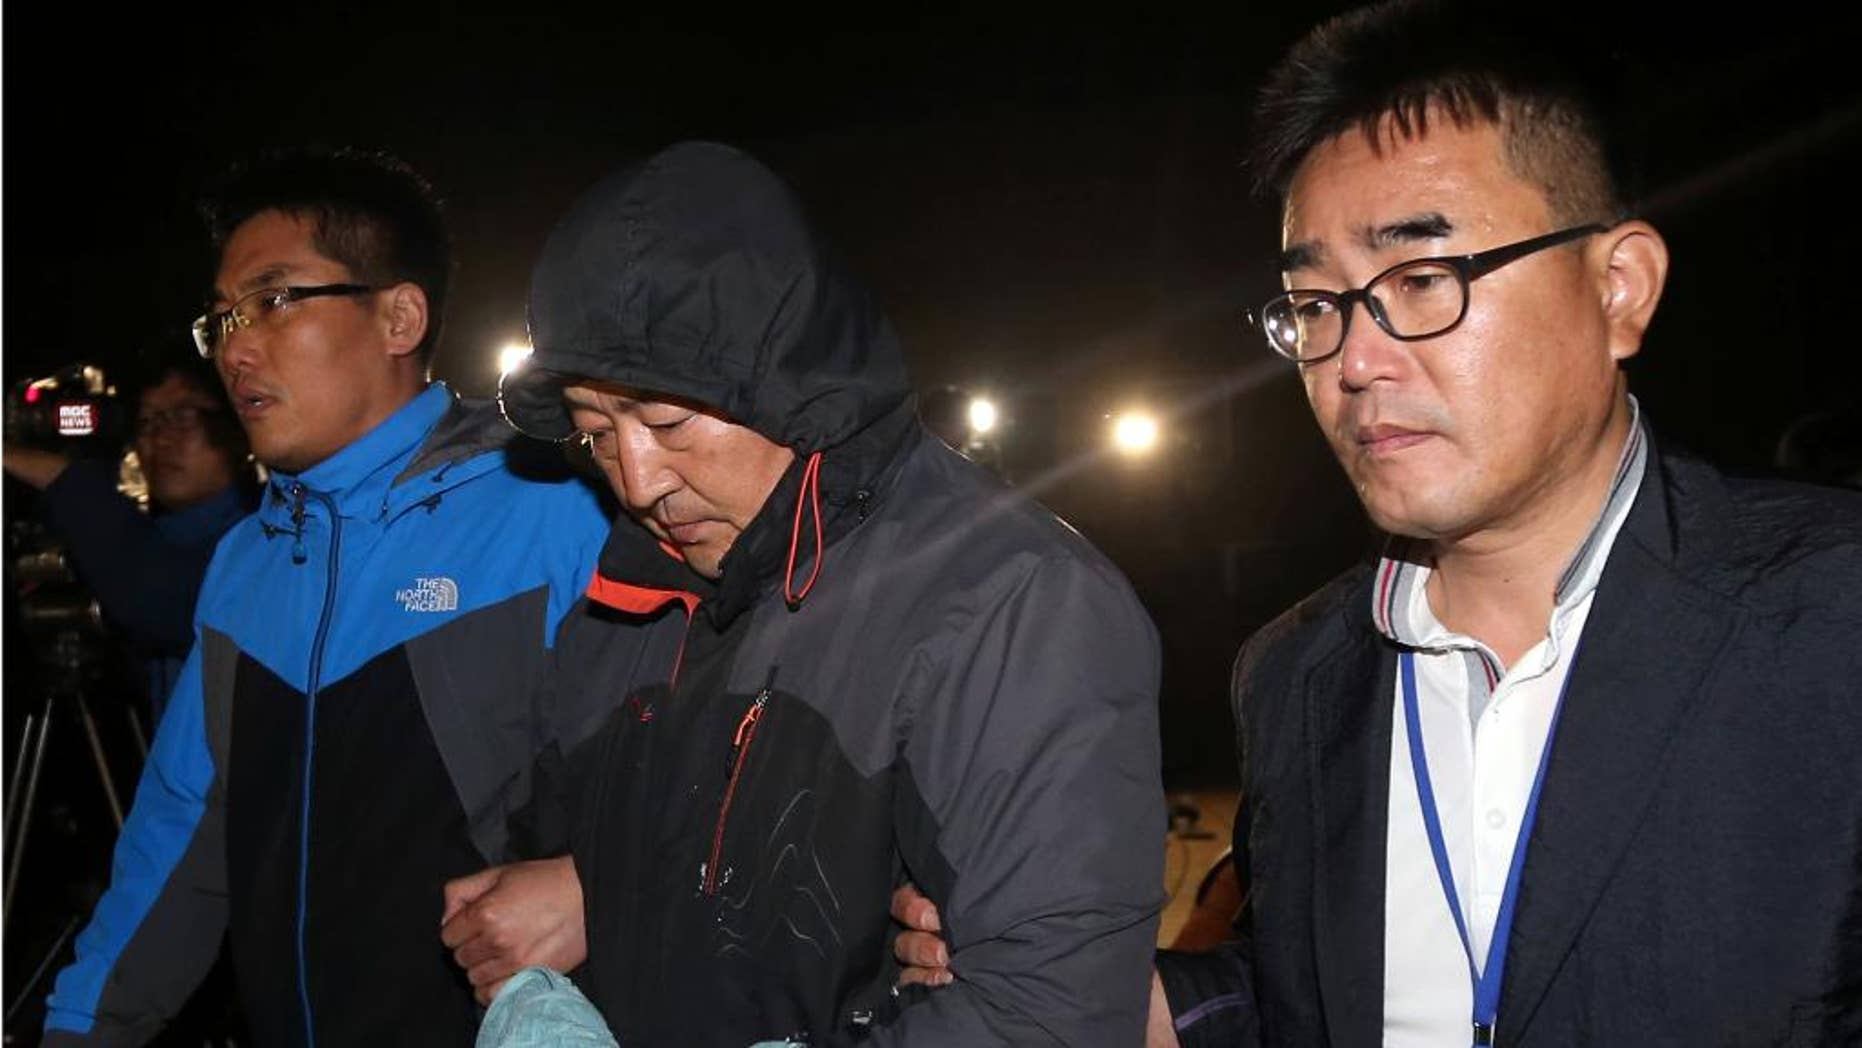 CORRECTS ID TO CREW MEMBER FROM CAPTAIN - Oh Yong-suck, center, a crew member of the sunken ferry Sewol in the water off the southern coast, leaves a court which issued his arrest warrant in Mokpo, south of Seoul, South Korea, Saturday, April 19, 2014. The investigation into South Korea's ferry disaster focused on the sharp turn it took just before it began listing and on the possibility that a quicker evacuation order by the captain could have saved lives, officials said Friday, as rescuers struggled to find some 270 people still missing and feared dead. (AP Photo/Yonhap) KOREA OUT